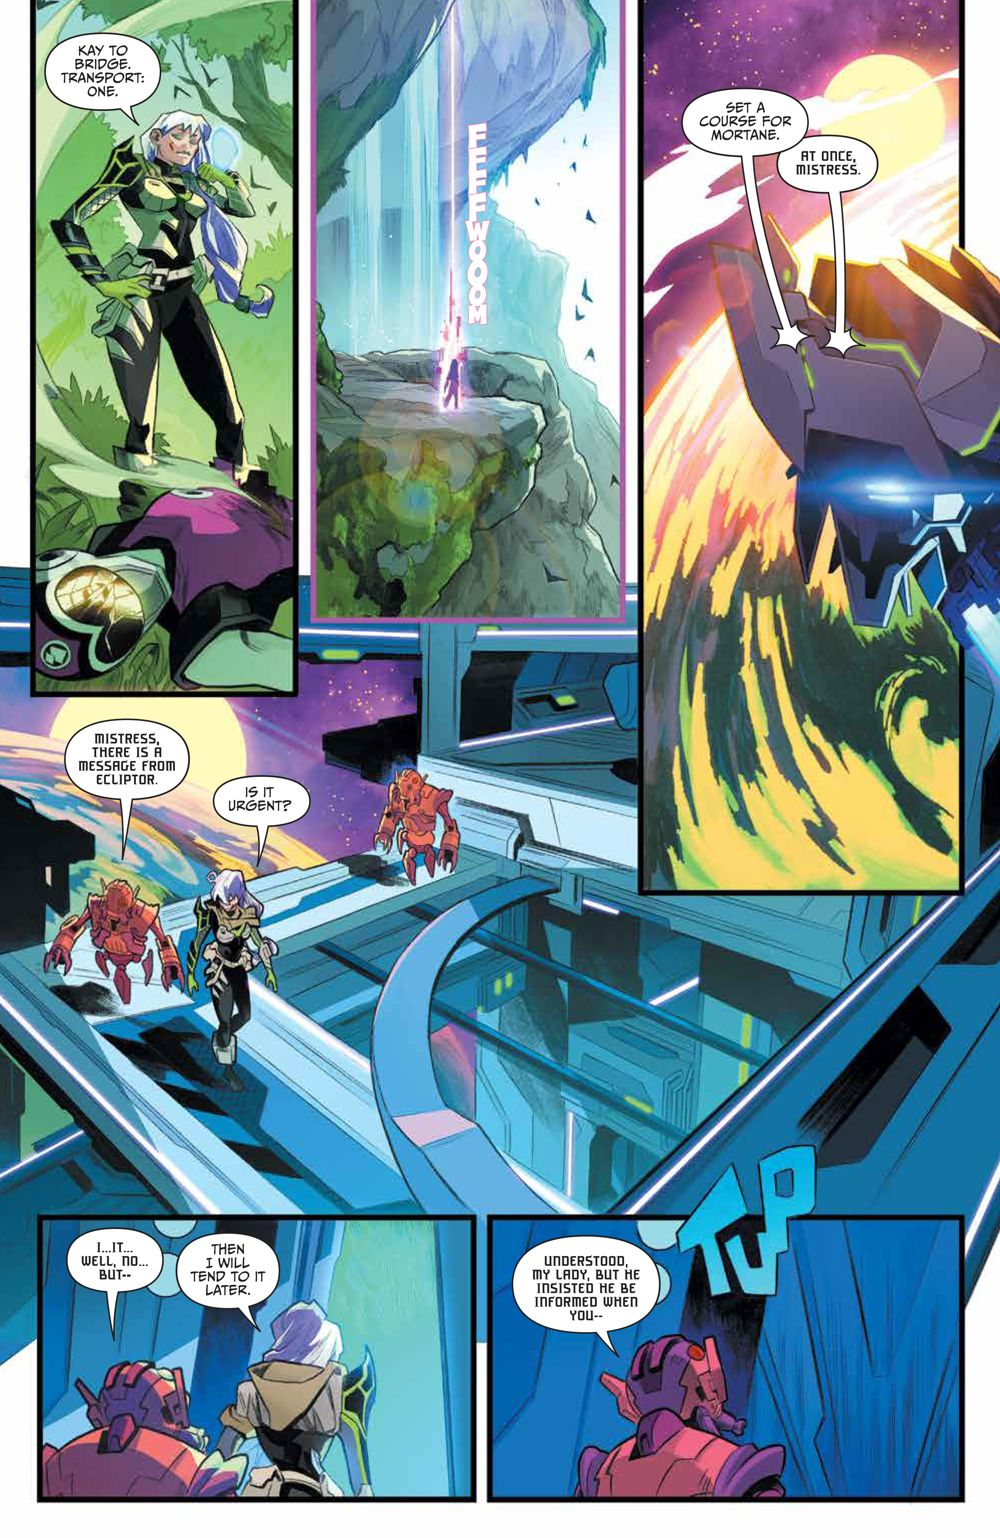 PR_Unlimited_HeirDarkness_001_PRESS_8 ComicList Previews: POWER RANGERS UNLIMITED HEIR TO THE DARKNESS #1